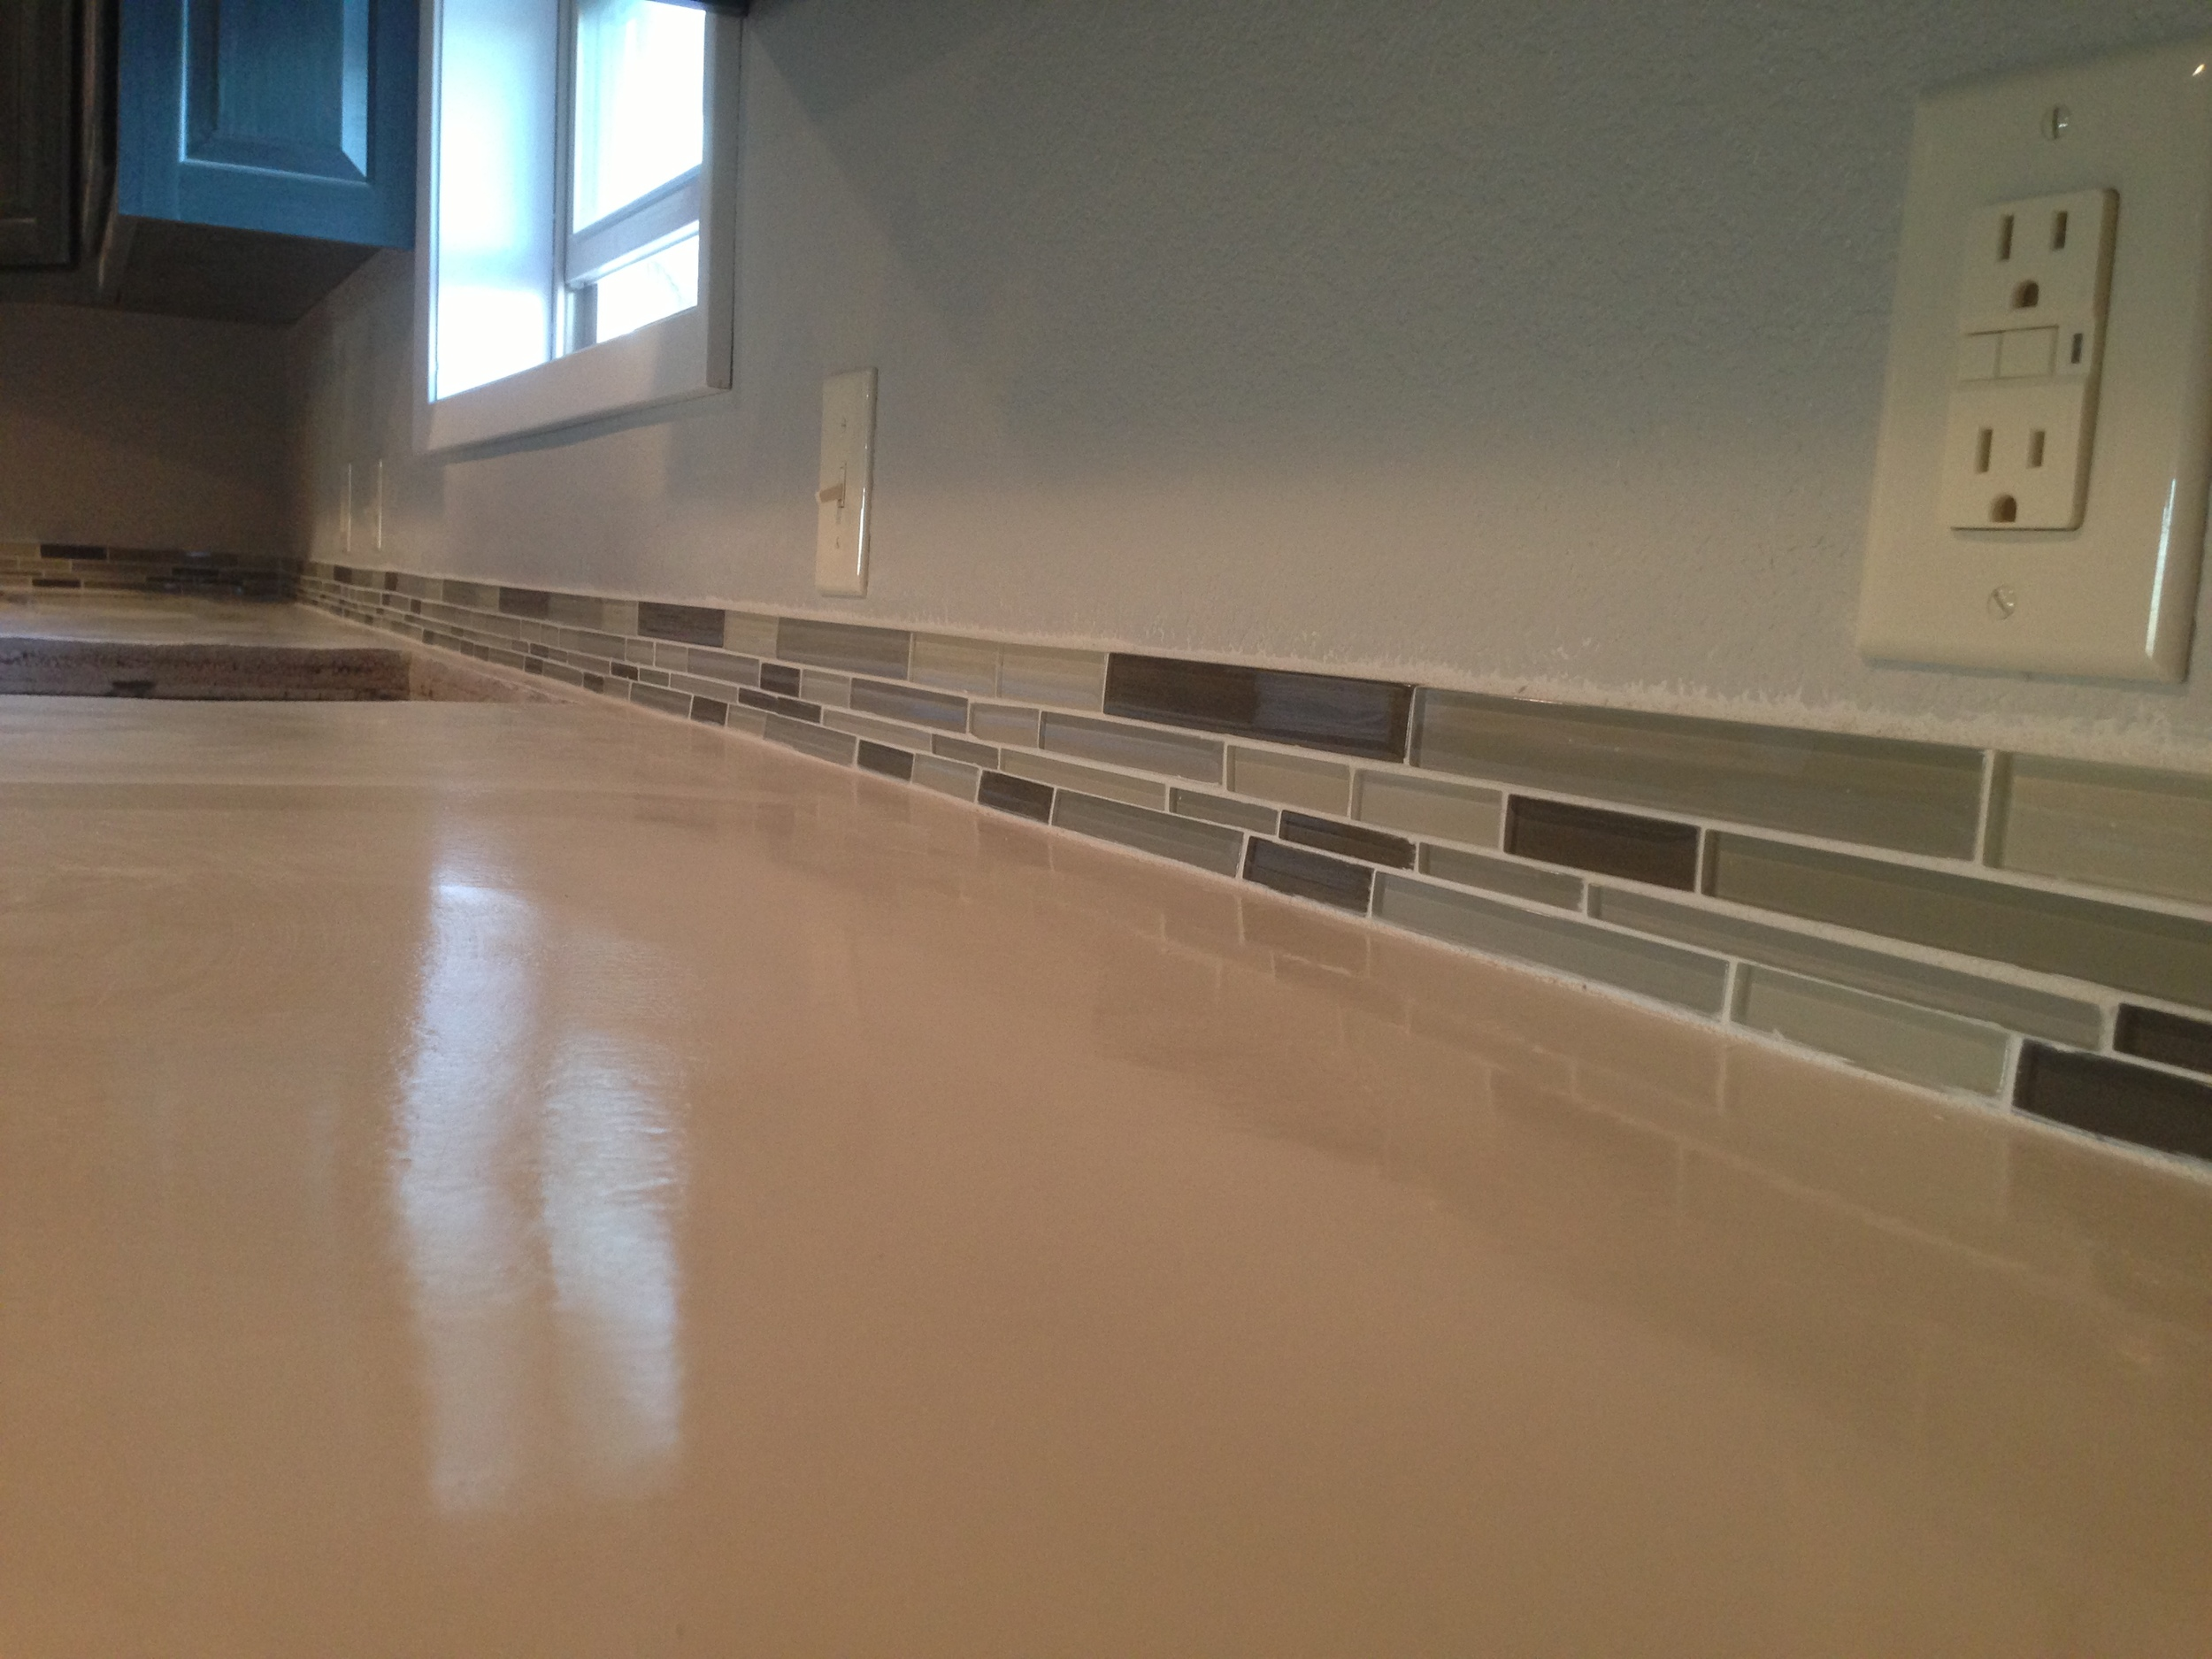 That is where the kitchen sink will be placed...with the completed back splash.